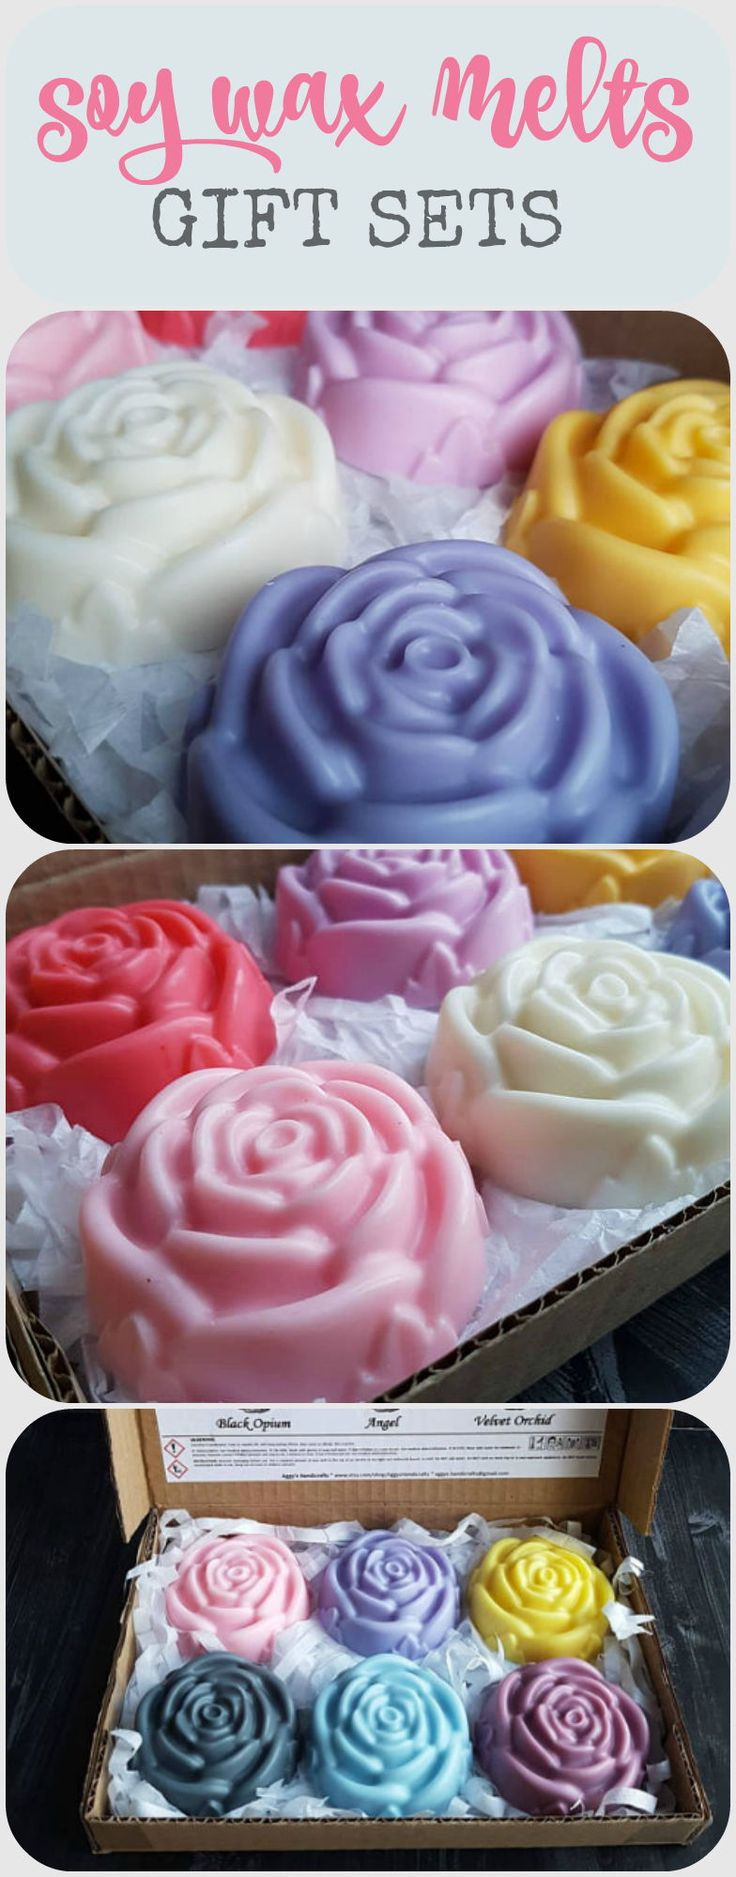 These Eco Soy wax melts look gorgeous. Love the choice of scents! Personal message can be added which makes it a perfect gift for mother's day or a birthday #soywax #waxmelts #giftideas #ad #mothersday #mothersdayideas #mothersdaygift #birthdaygiftideas